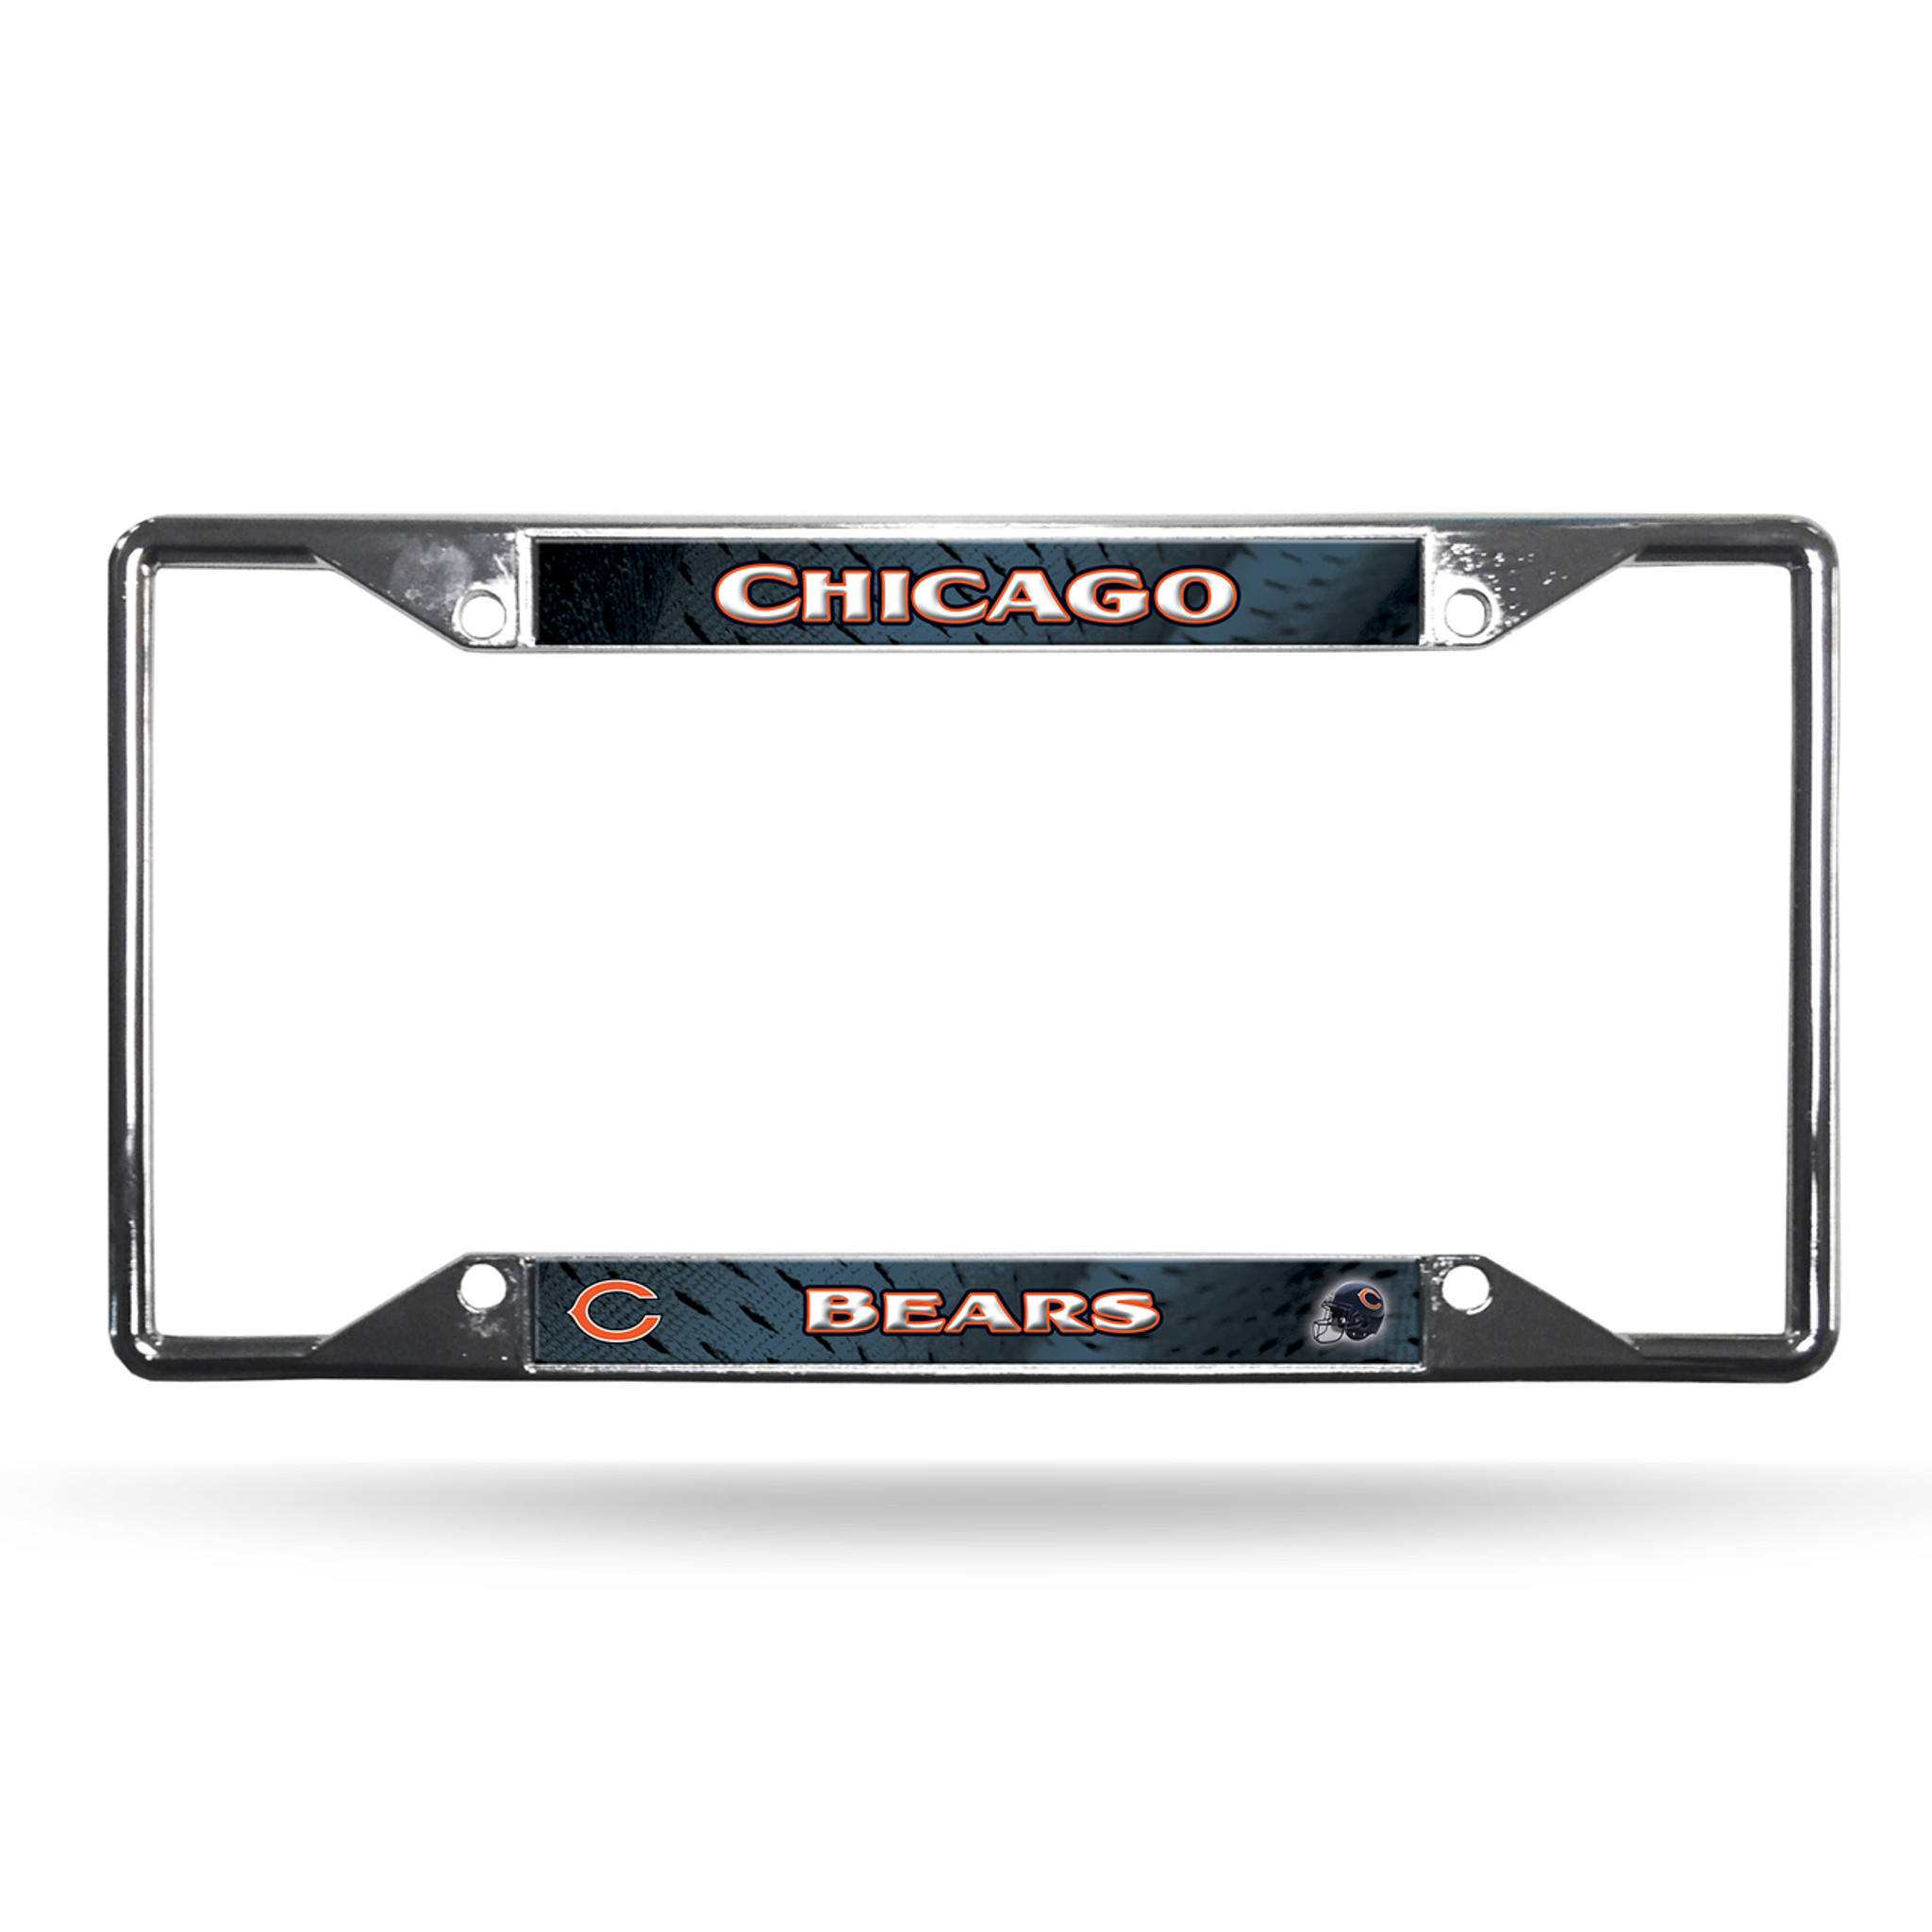 Chicago Bears License Plate Frame Chrome EZ View - Caseys Distributing